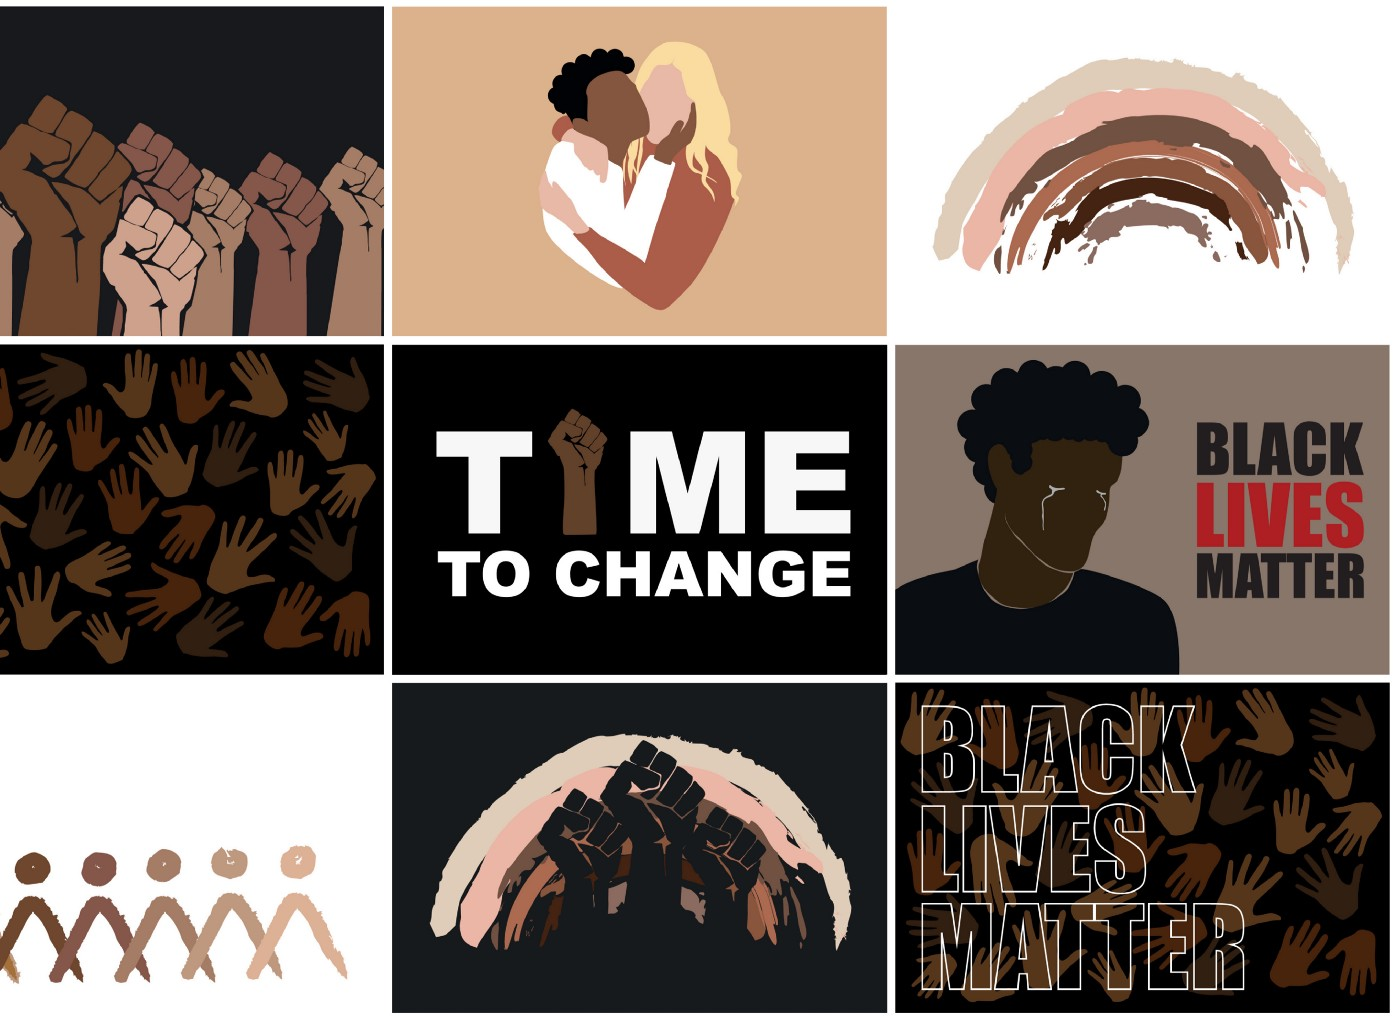 Illustrations of raised fists, a Black person and a White person embracing, a crying Black man, Black Lives Matter